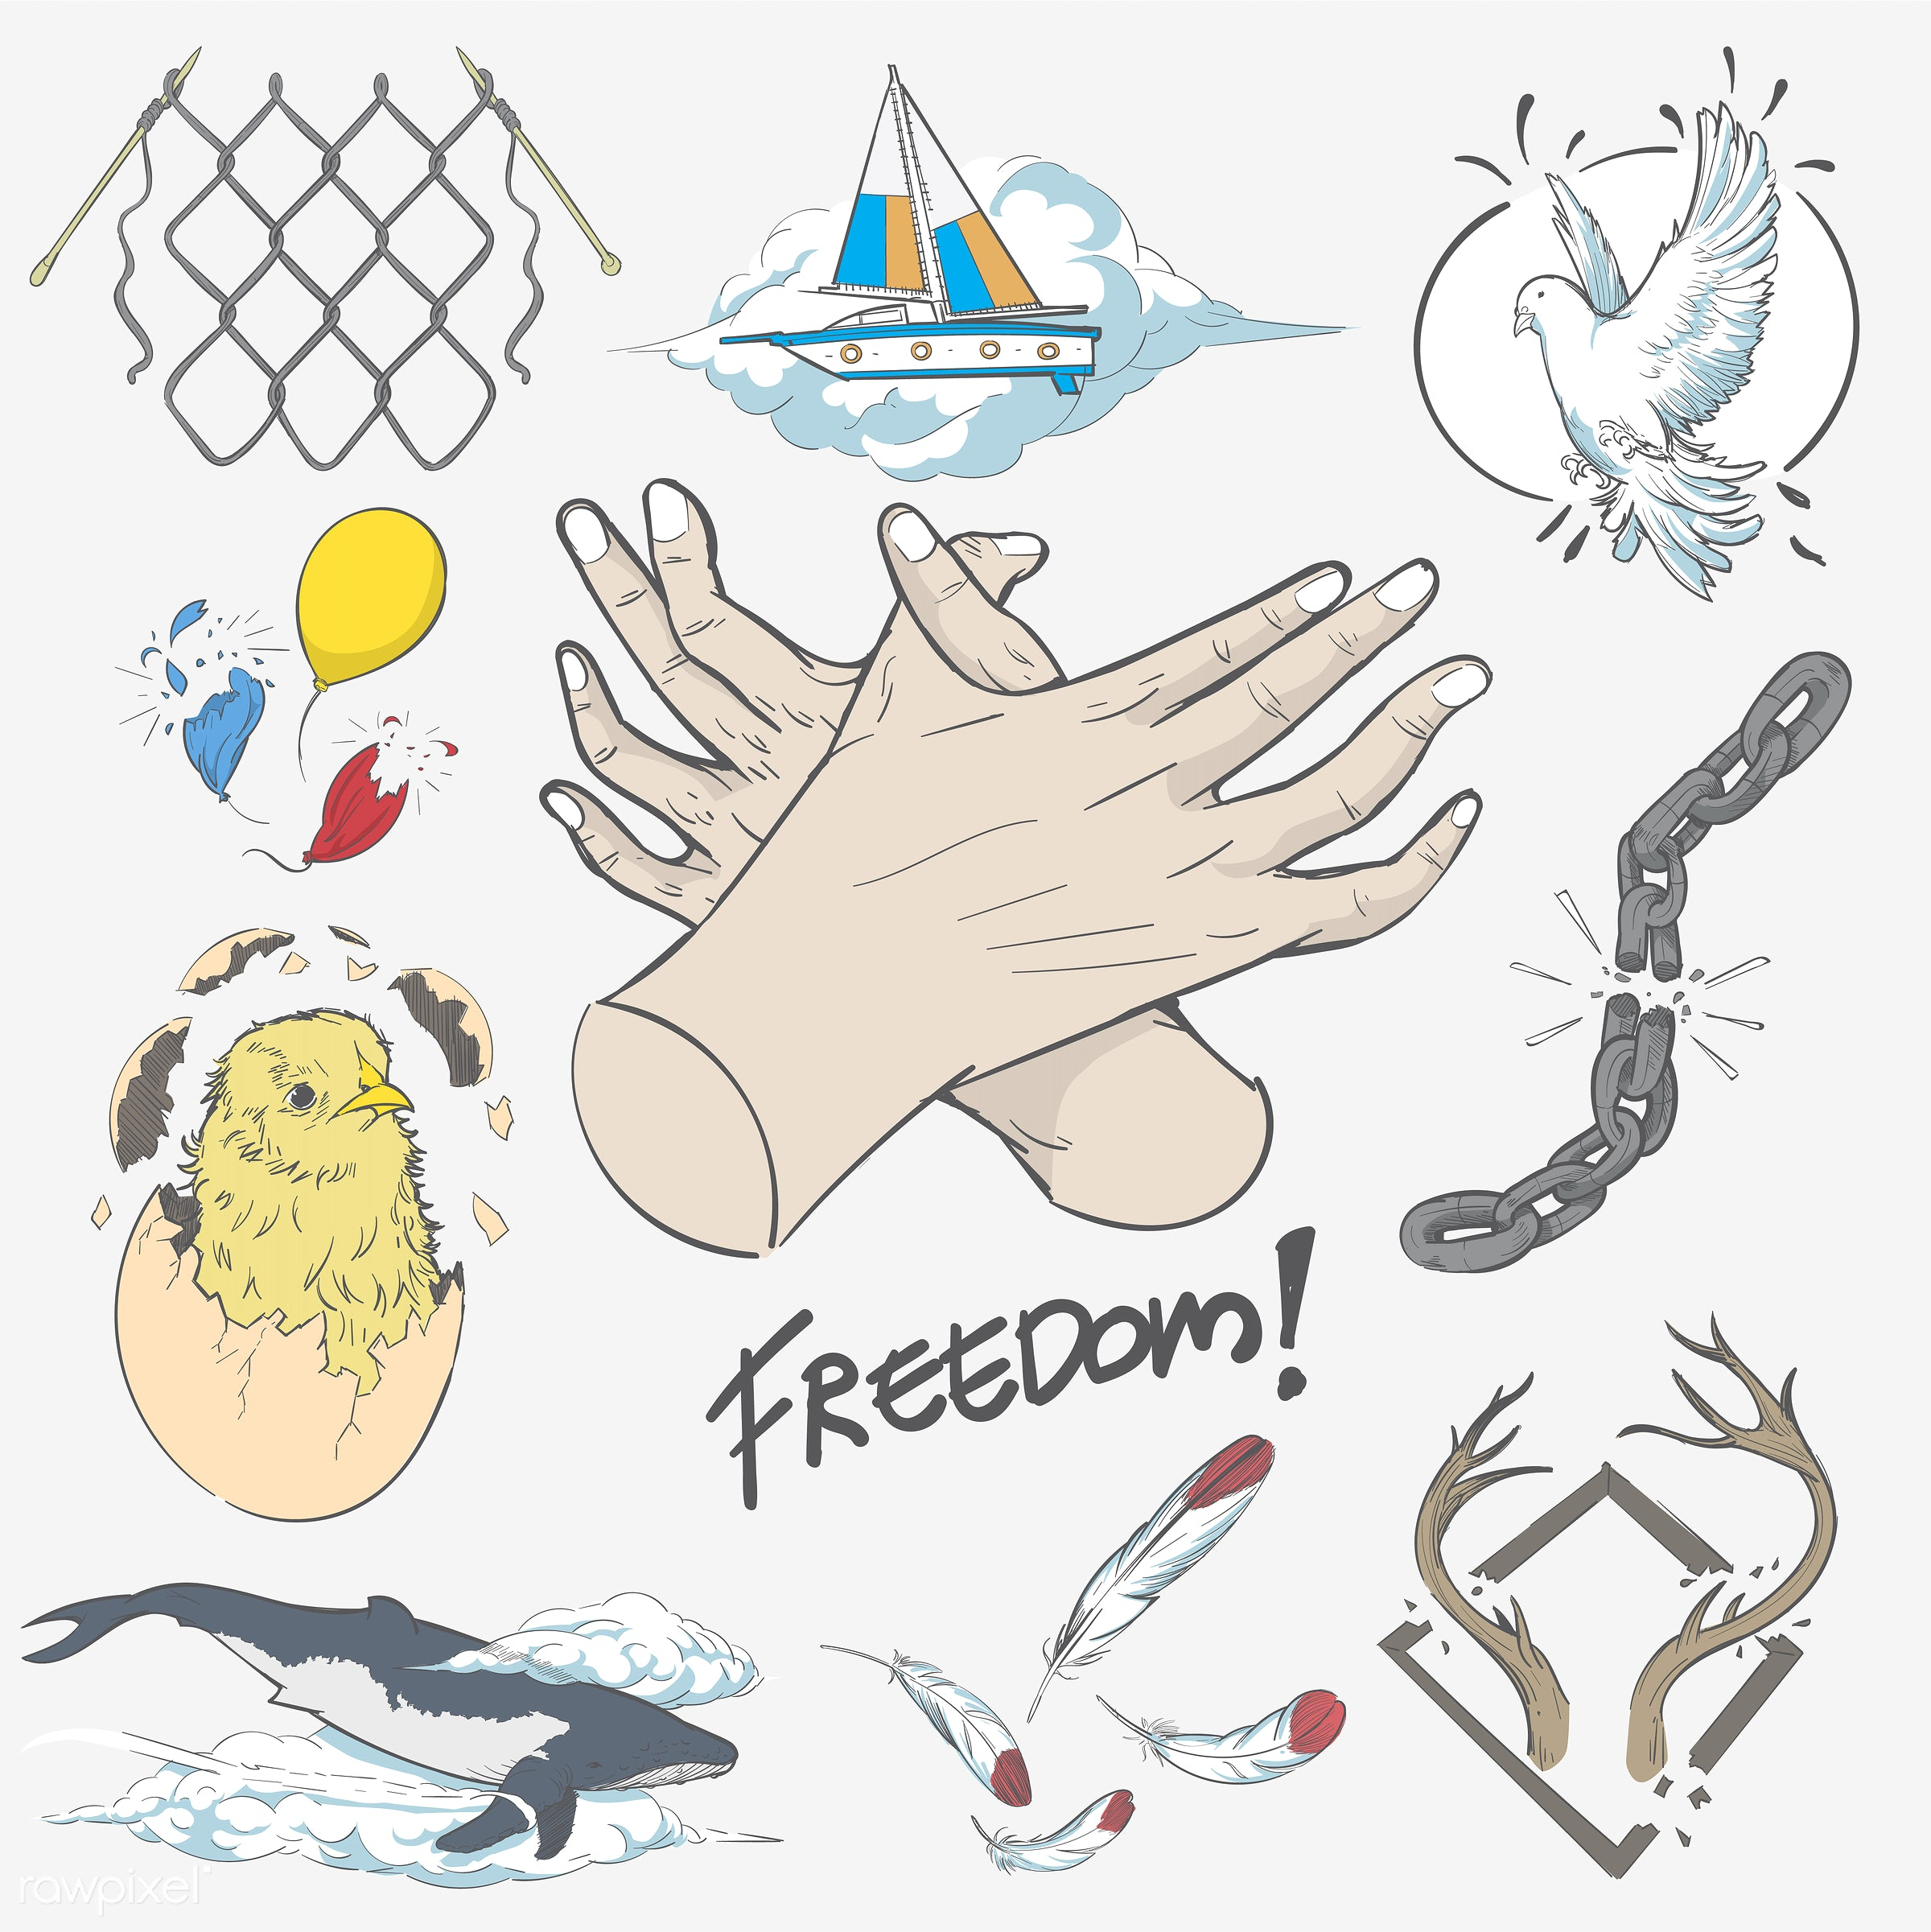 Hand drawing illustration of freedom concept - art, artwork, collection, creative, creativity, design, draw, drawing, drawn...